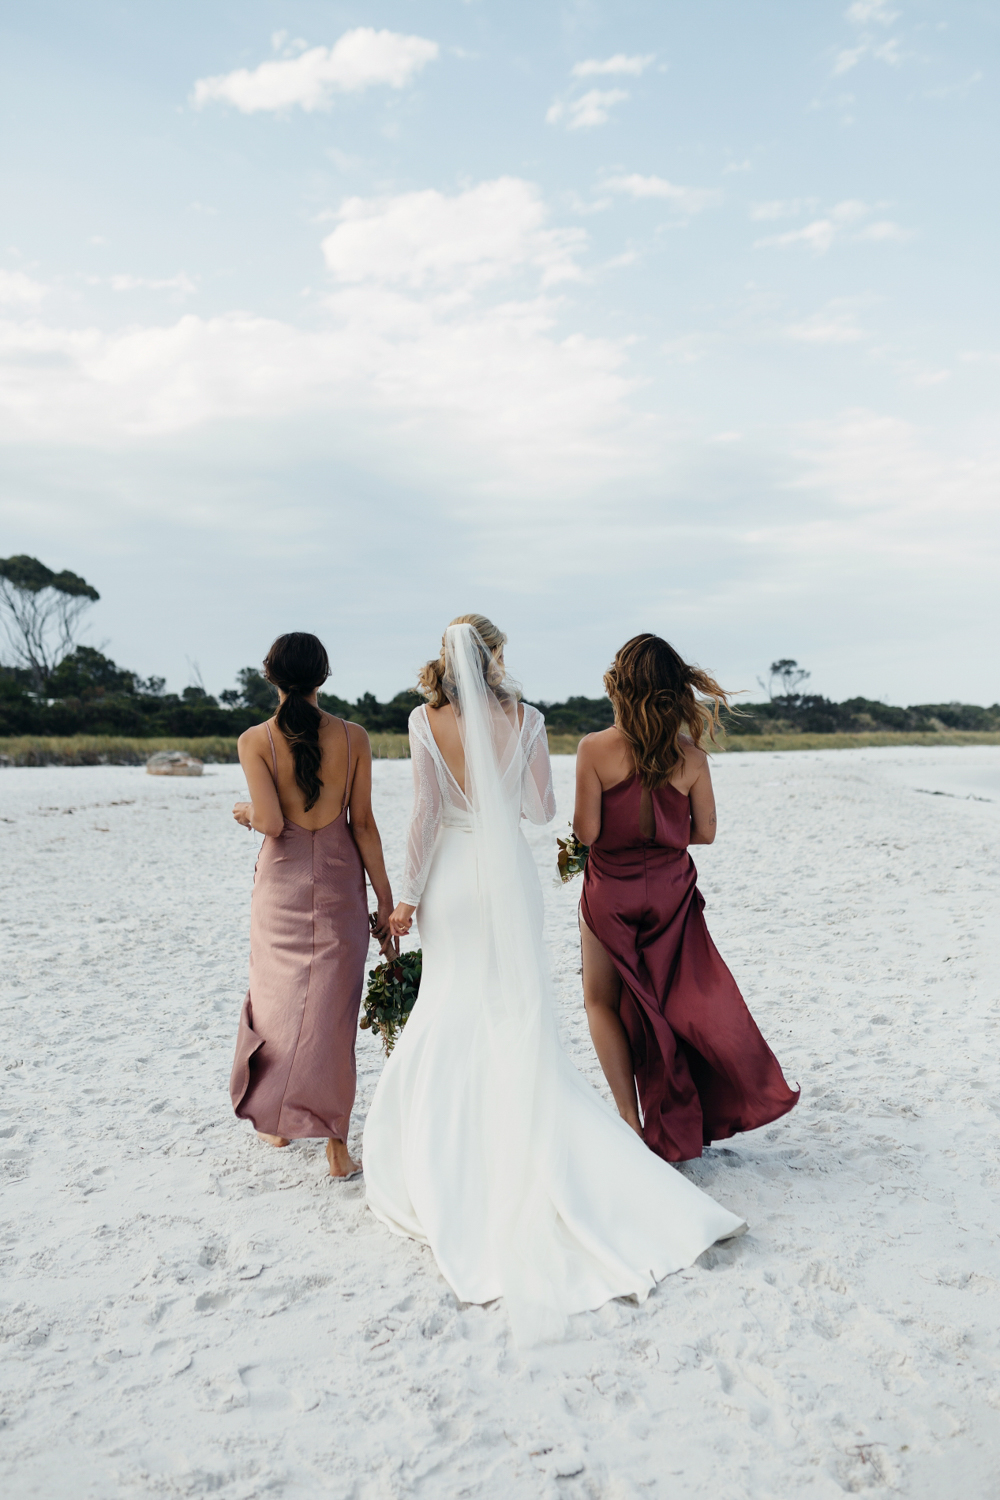 bridesmaids walk with bride on white sandy beach in Tasmania.